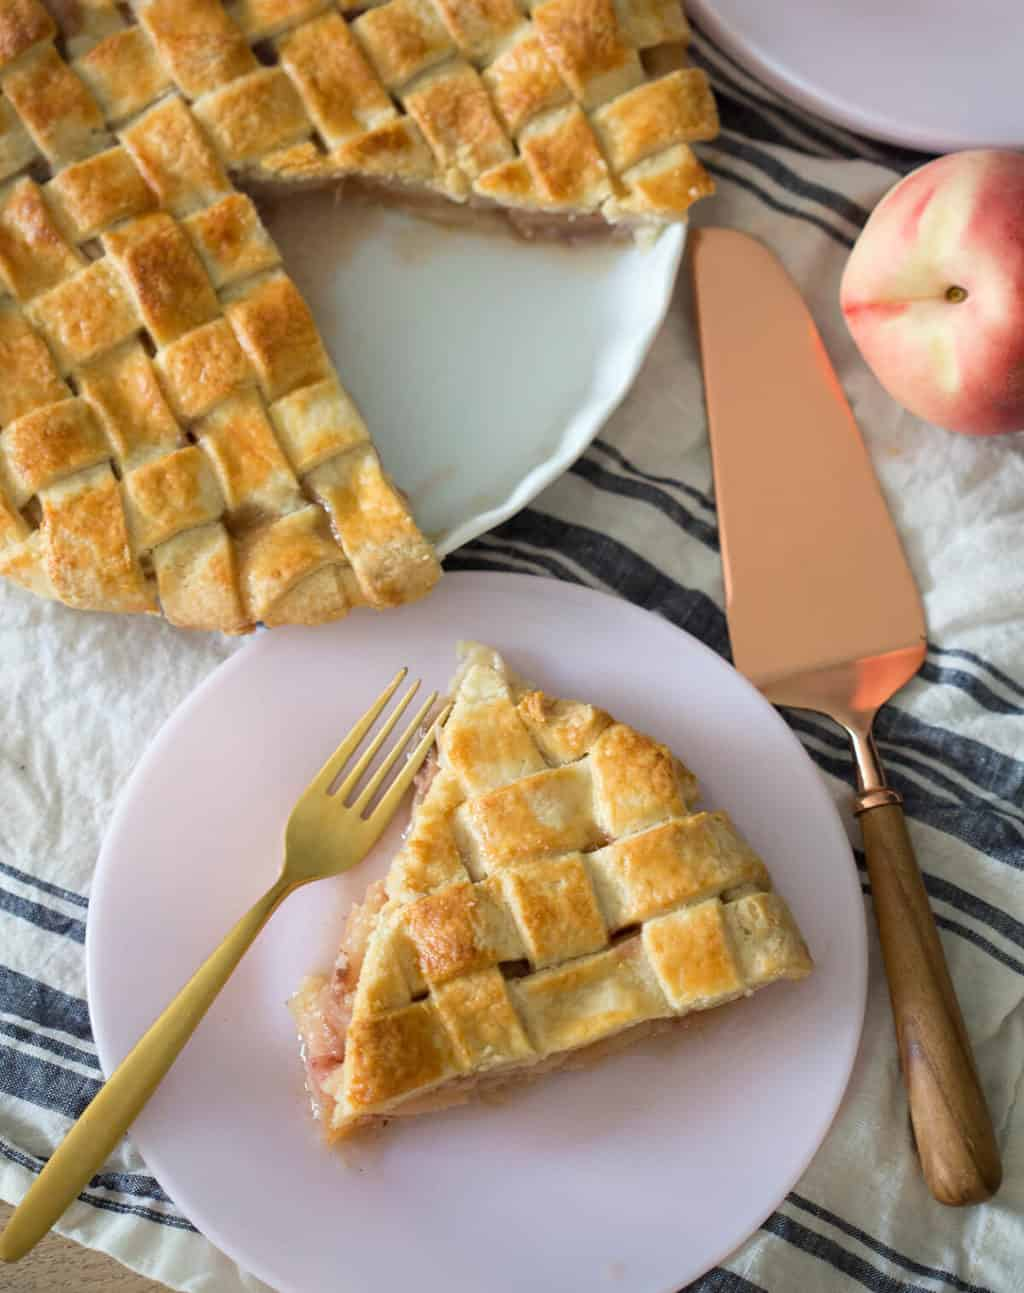 A slice of peach pie on a plate ready to eat.